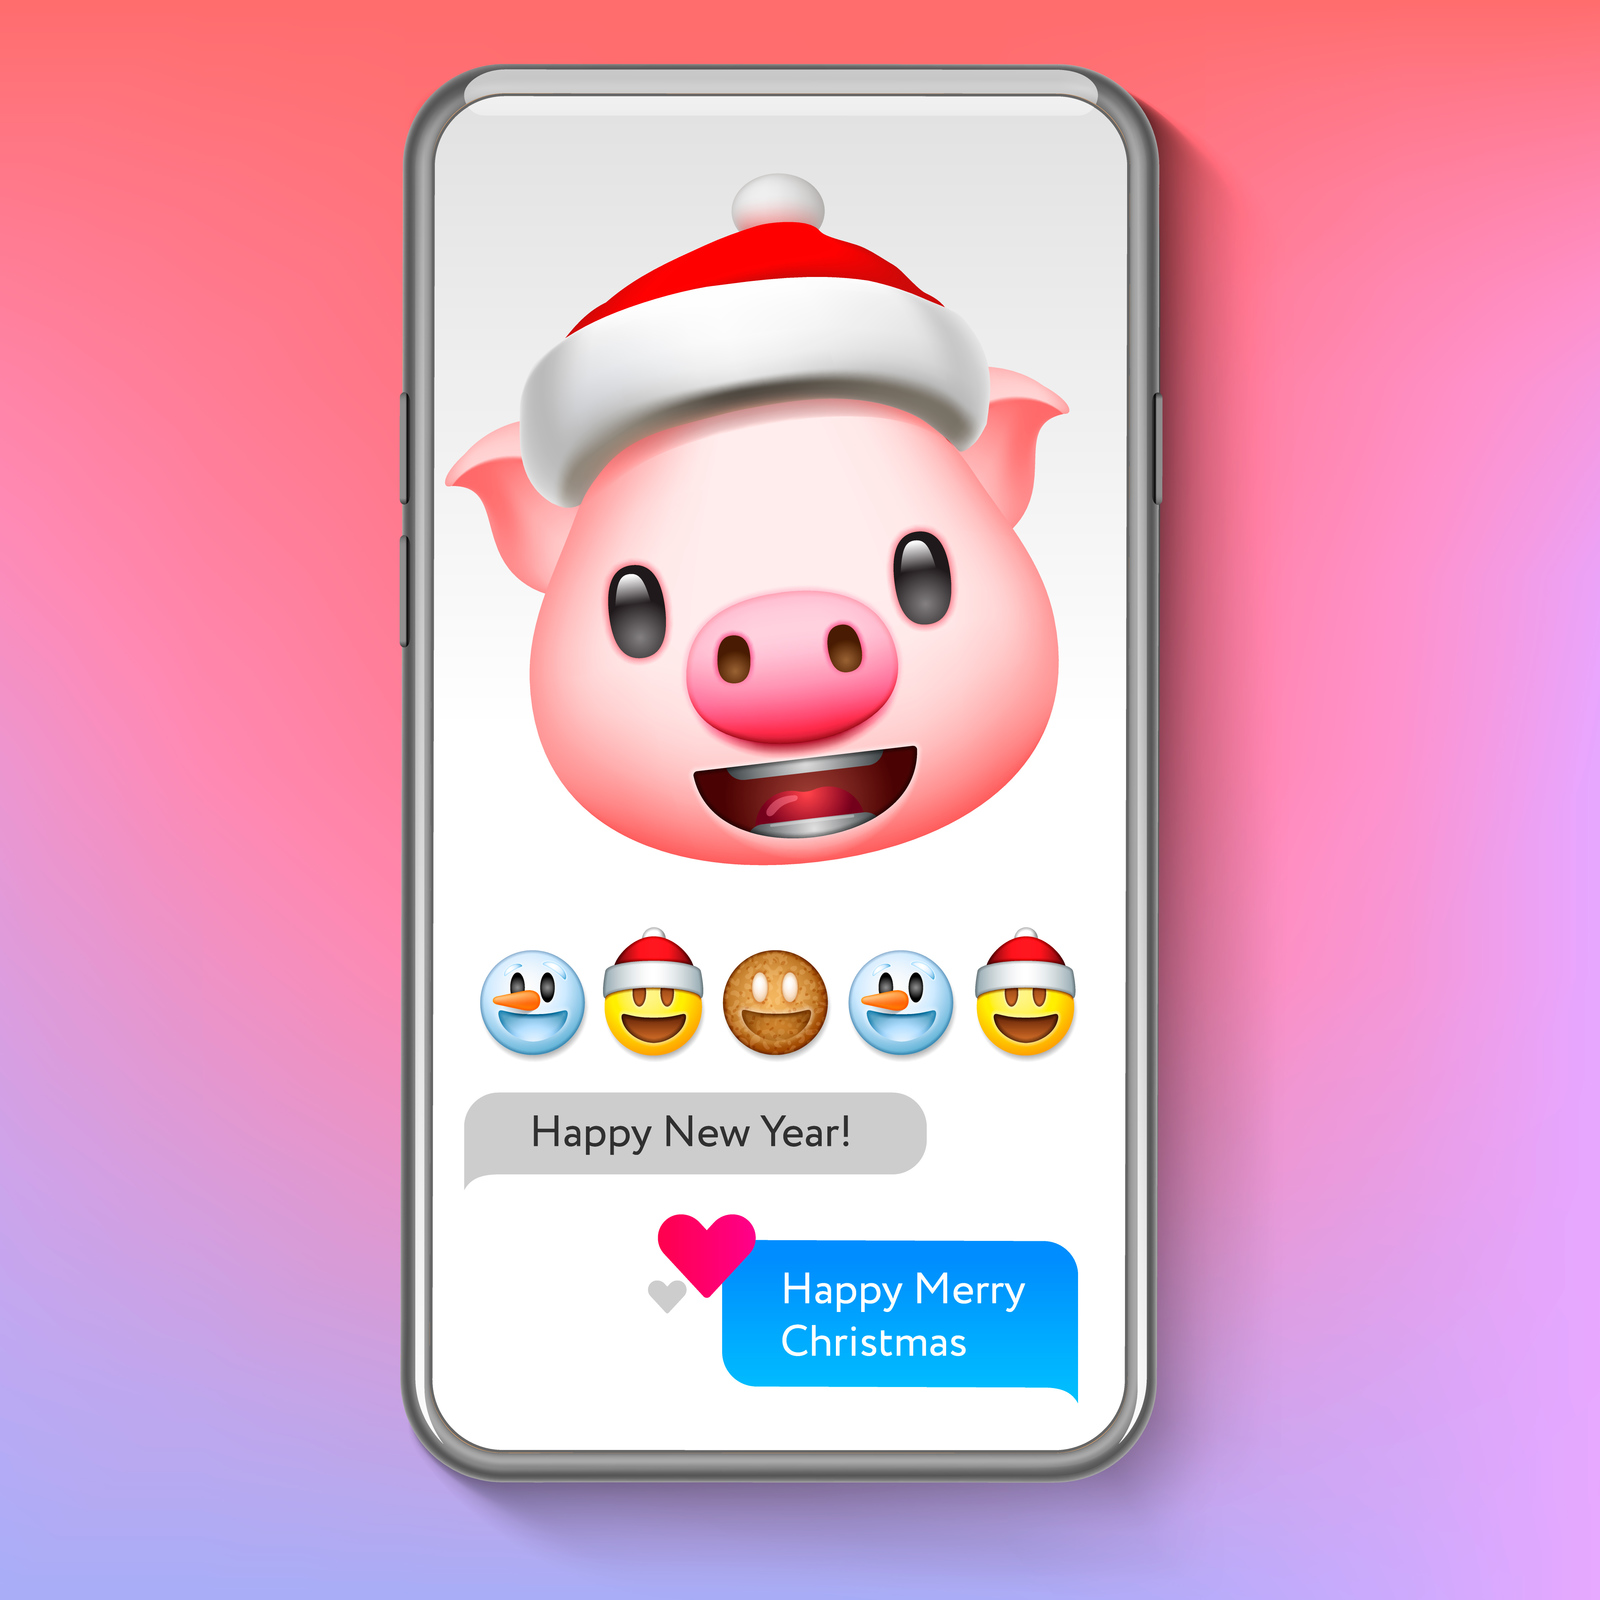 Christmas emoji, holiday smiley faces in Santa's hat, emoticon set